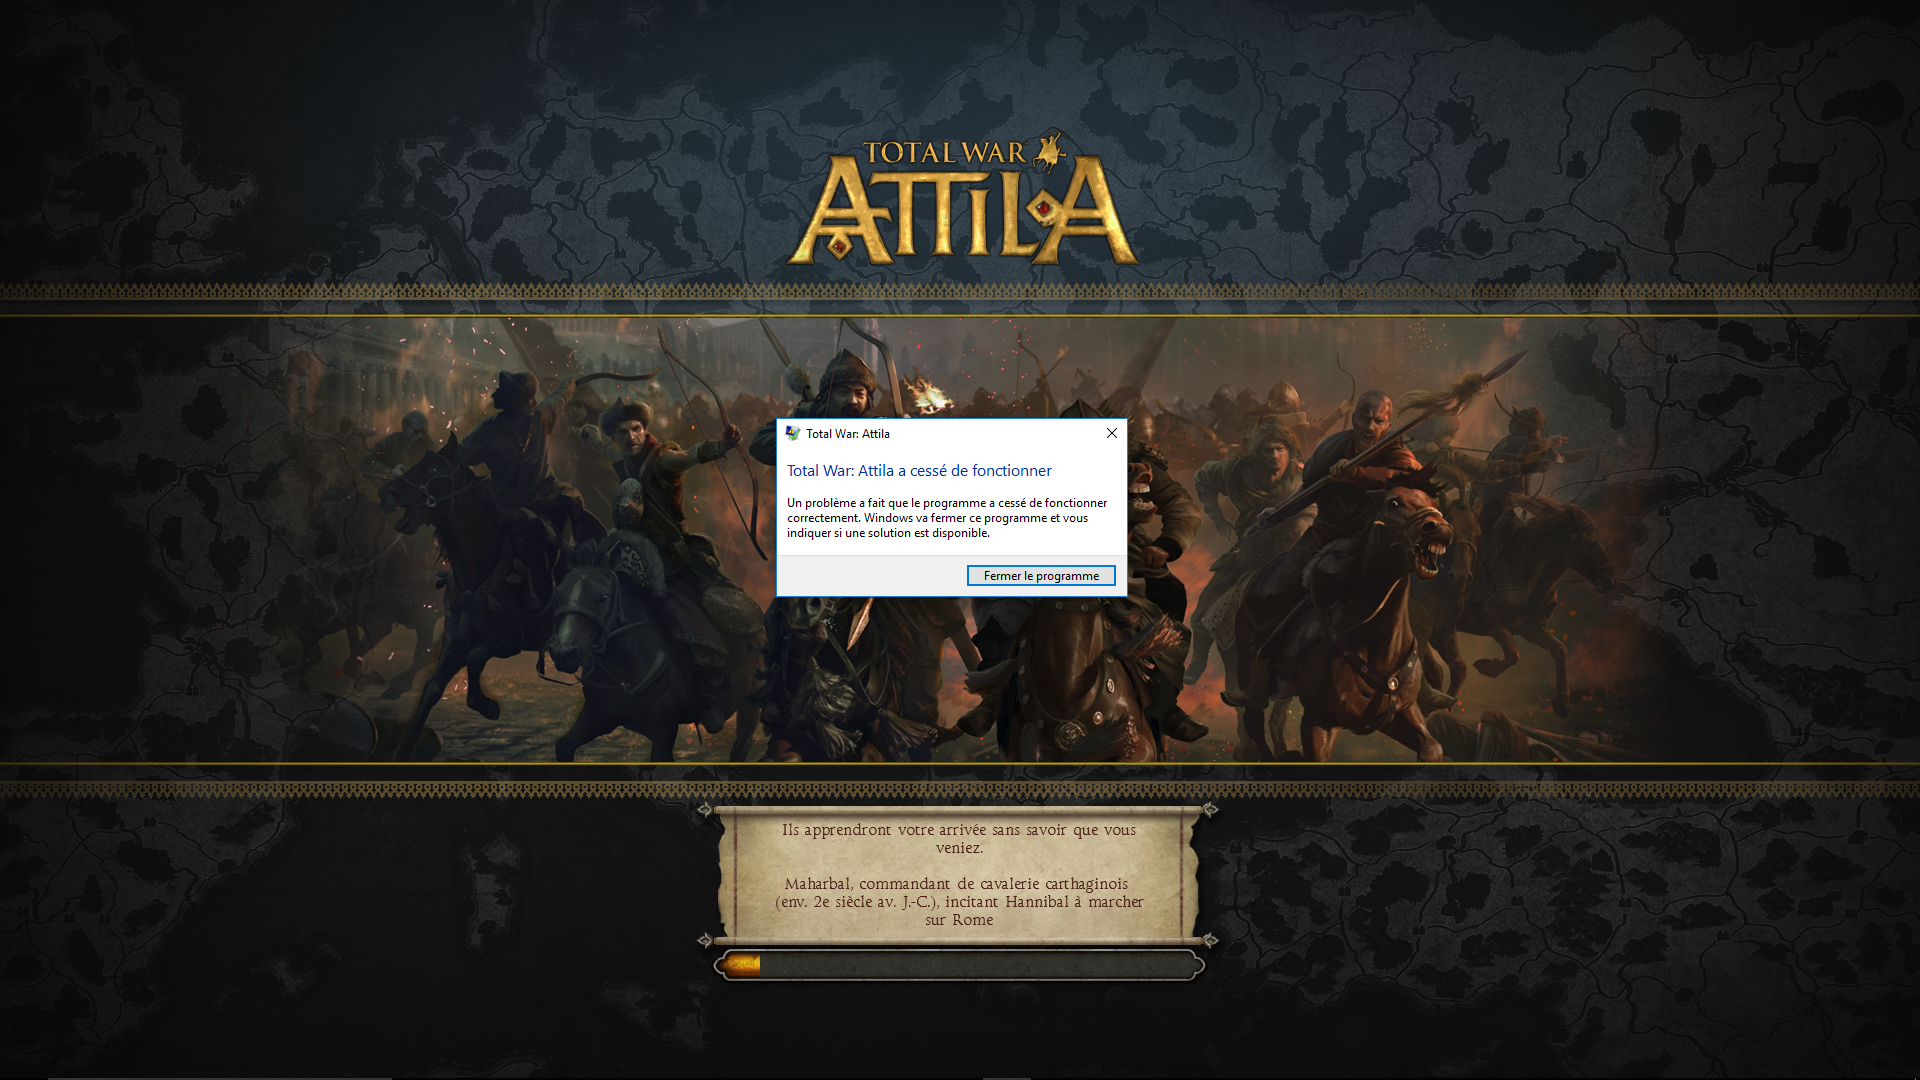 GAME CRASHES WHEN TRYING TO LOAD SAVE — Total War Forums